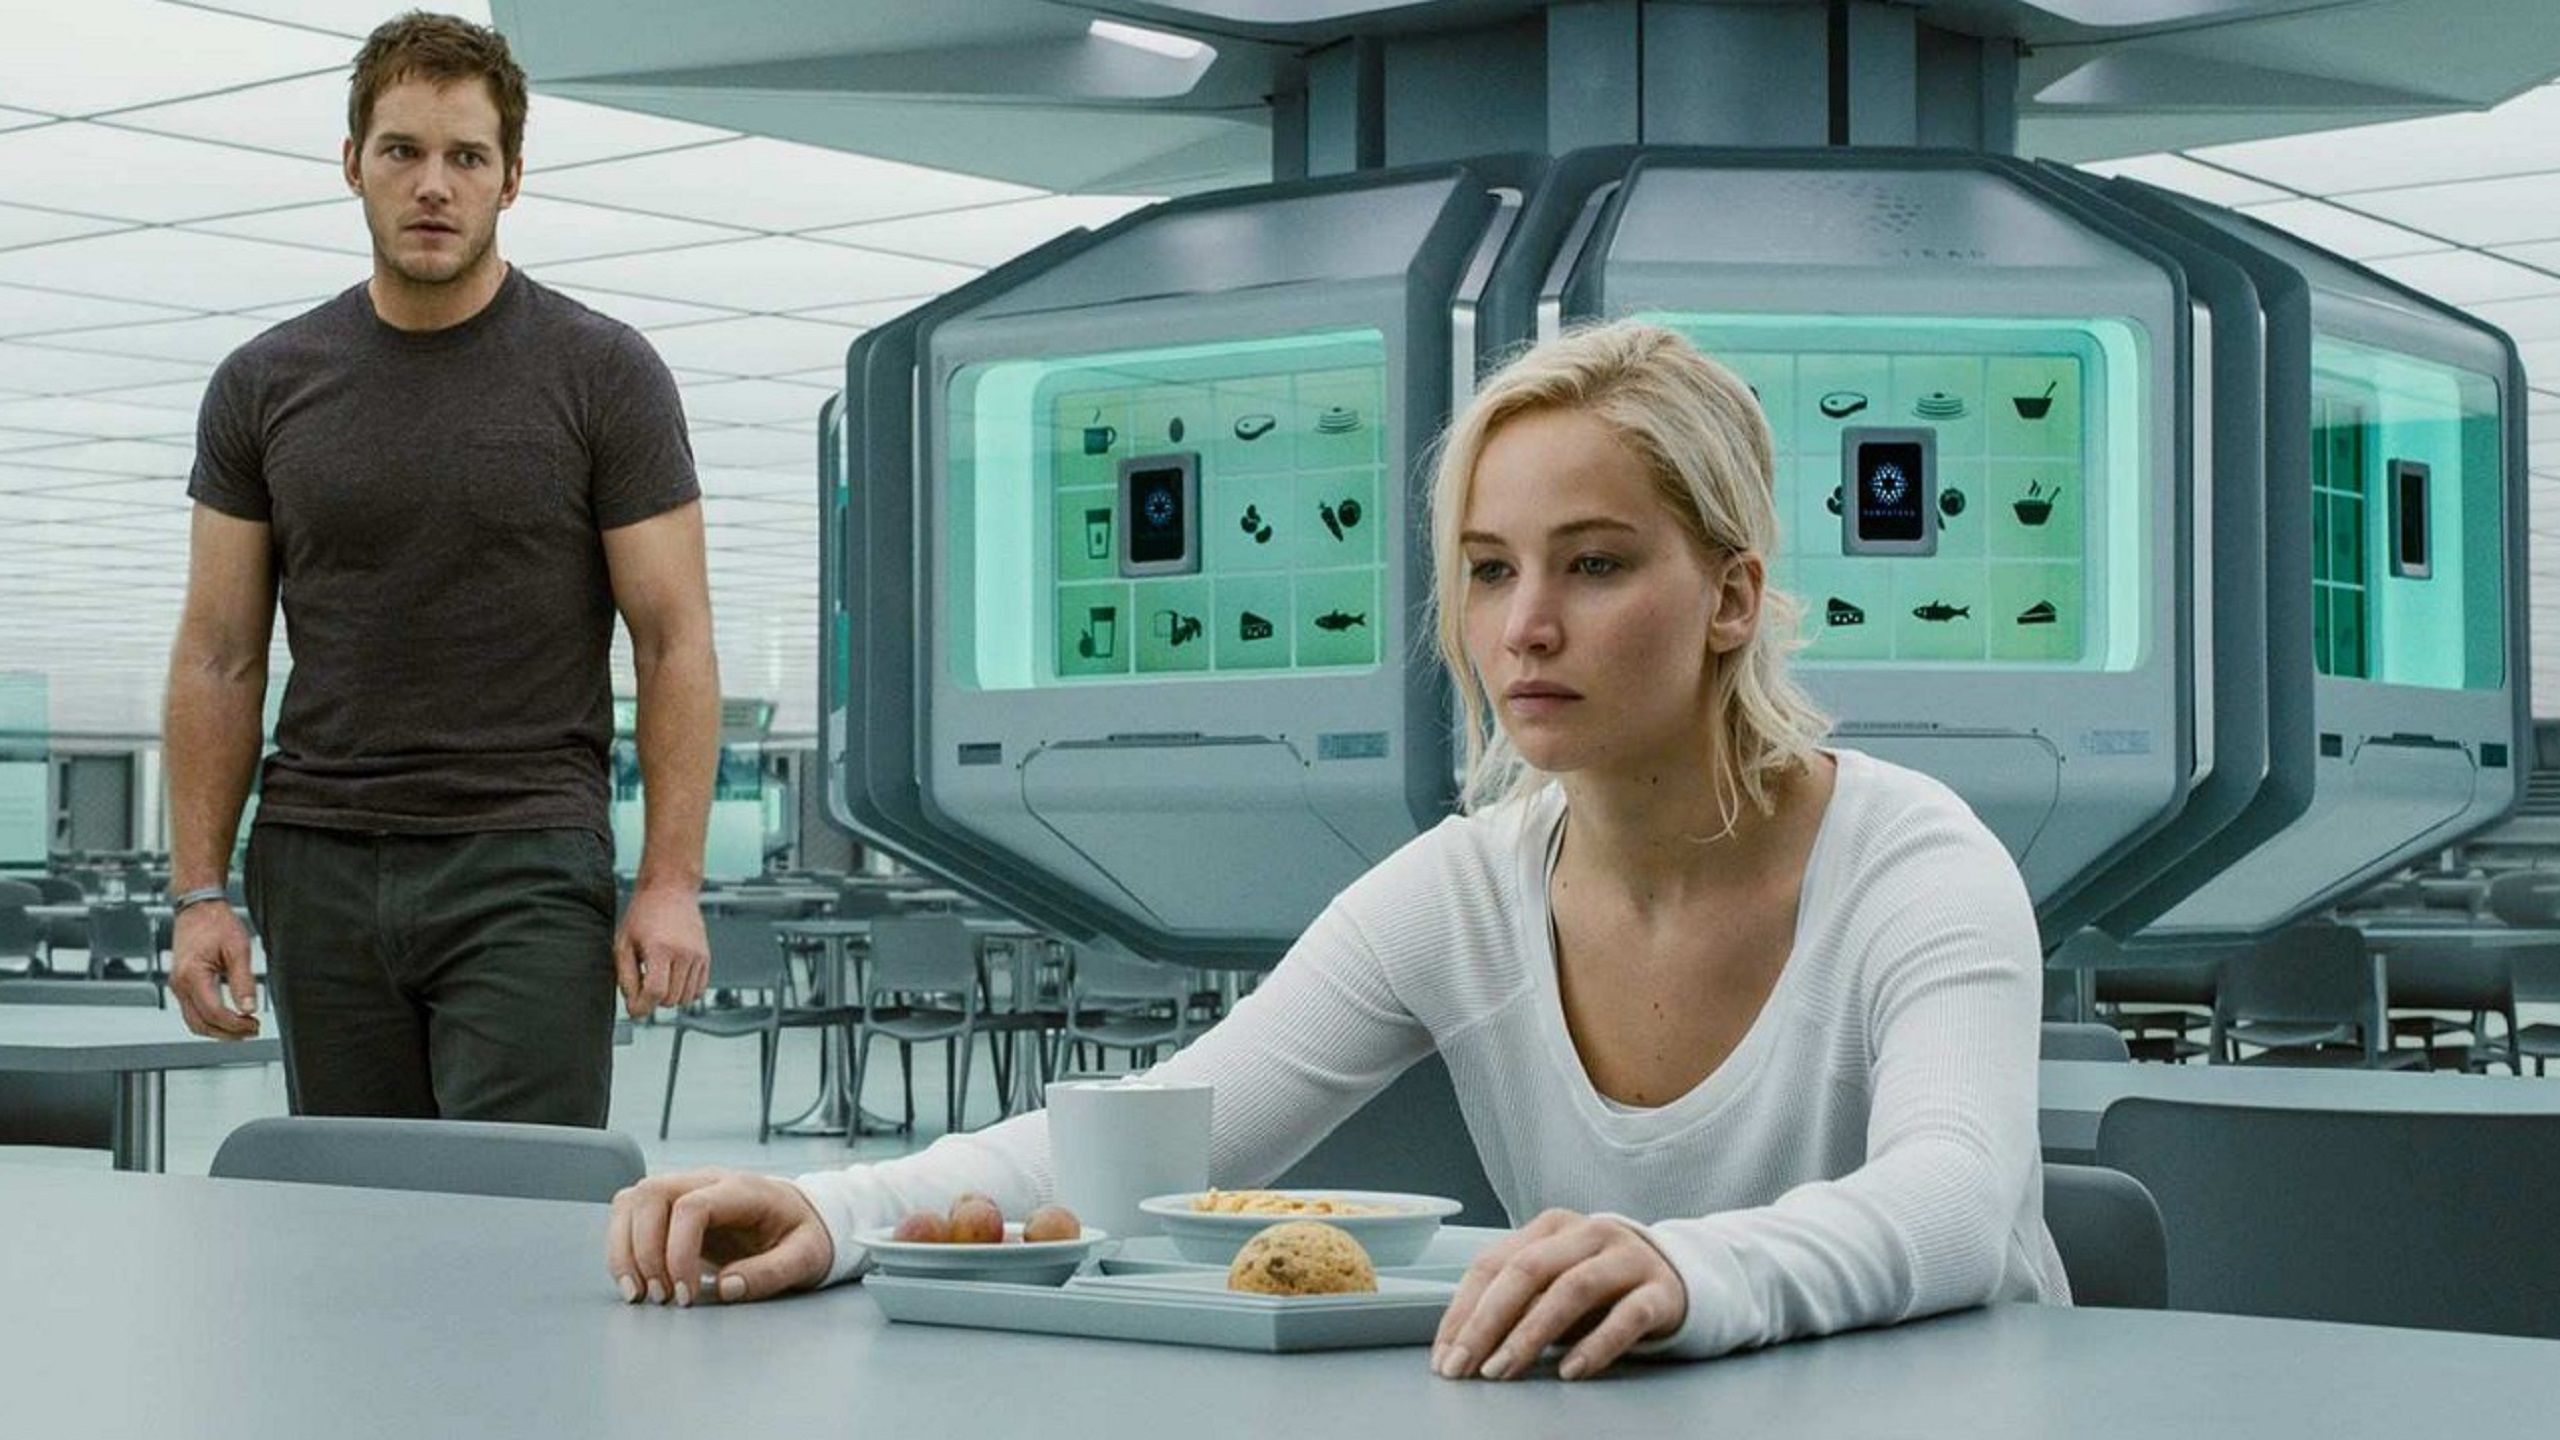 Chris Pratt & Jennifer Lawrence inside spaceship mensa room